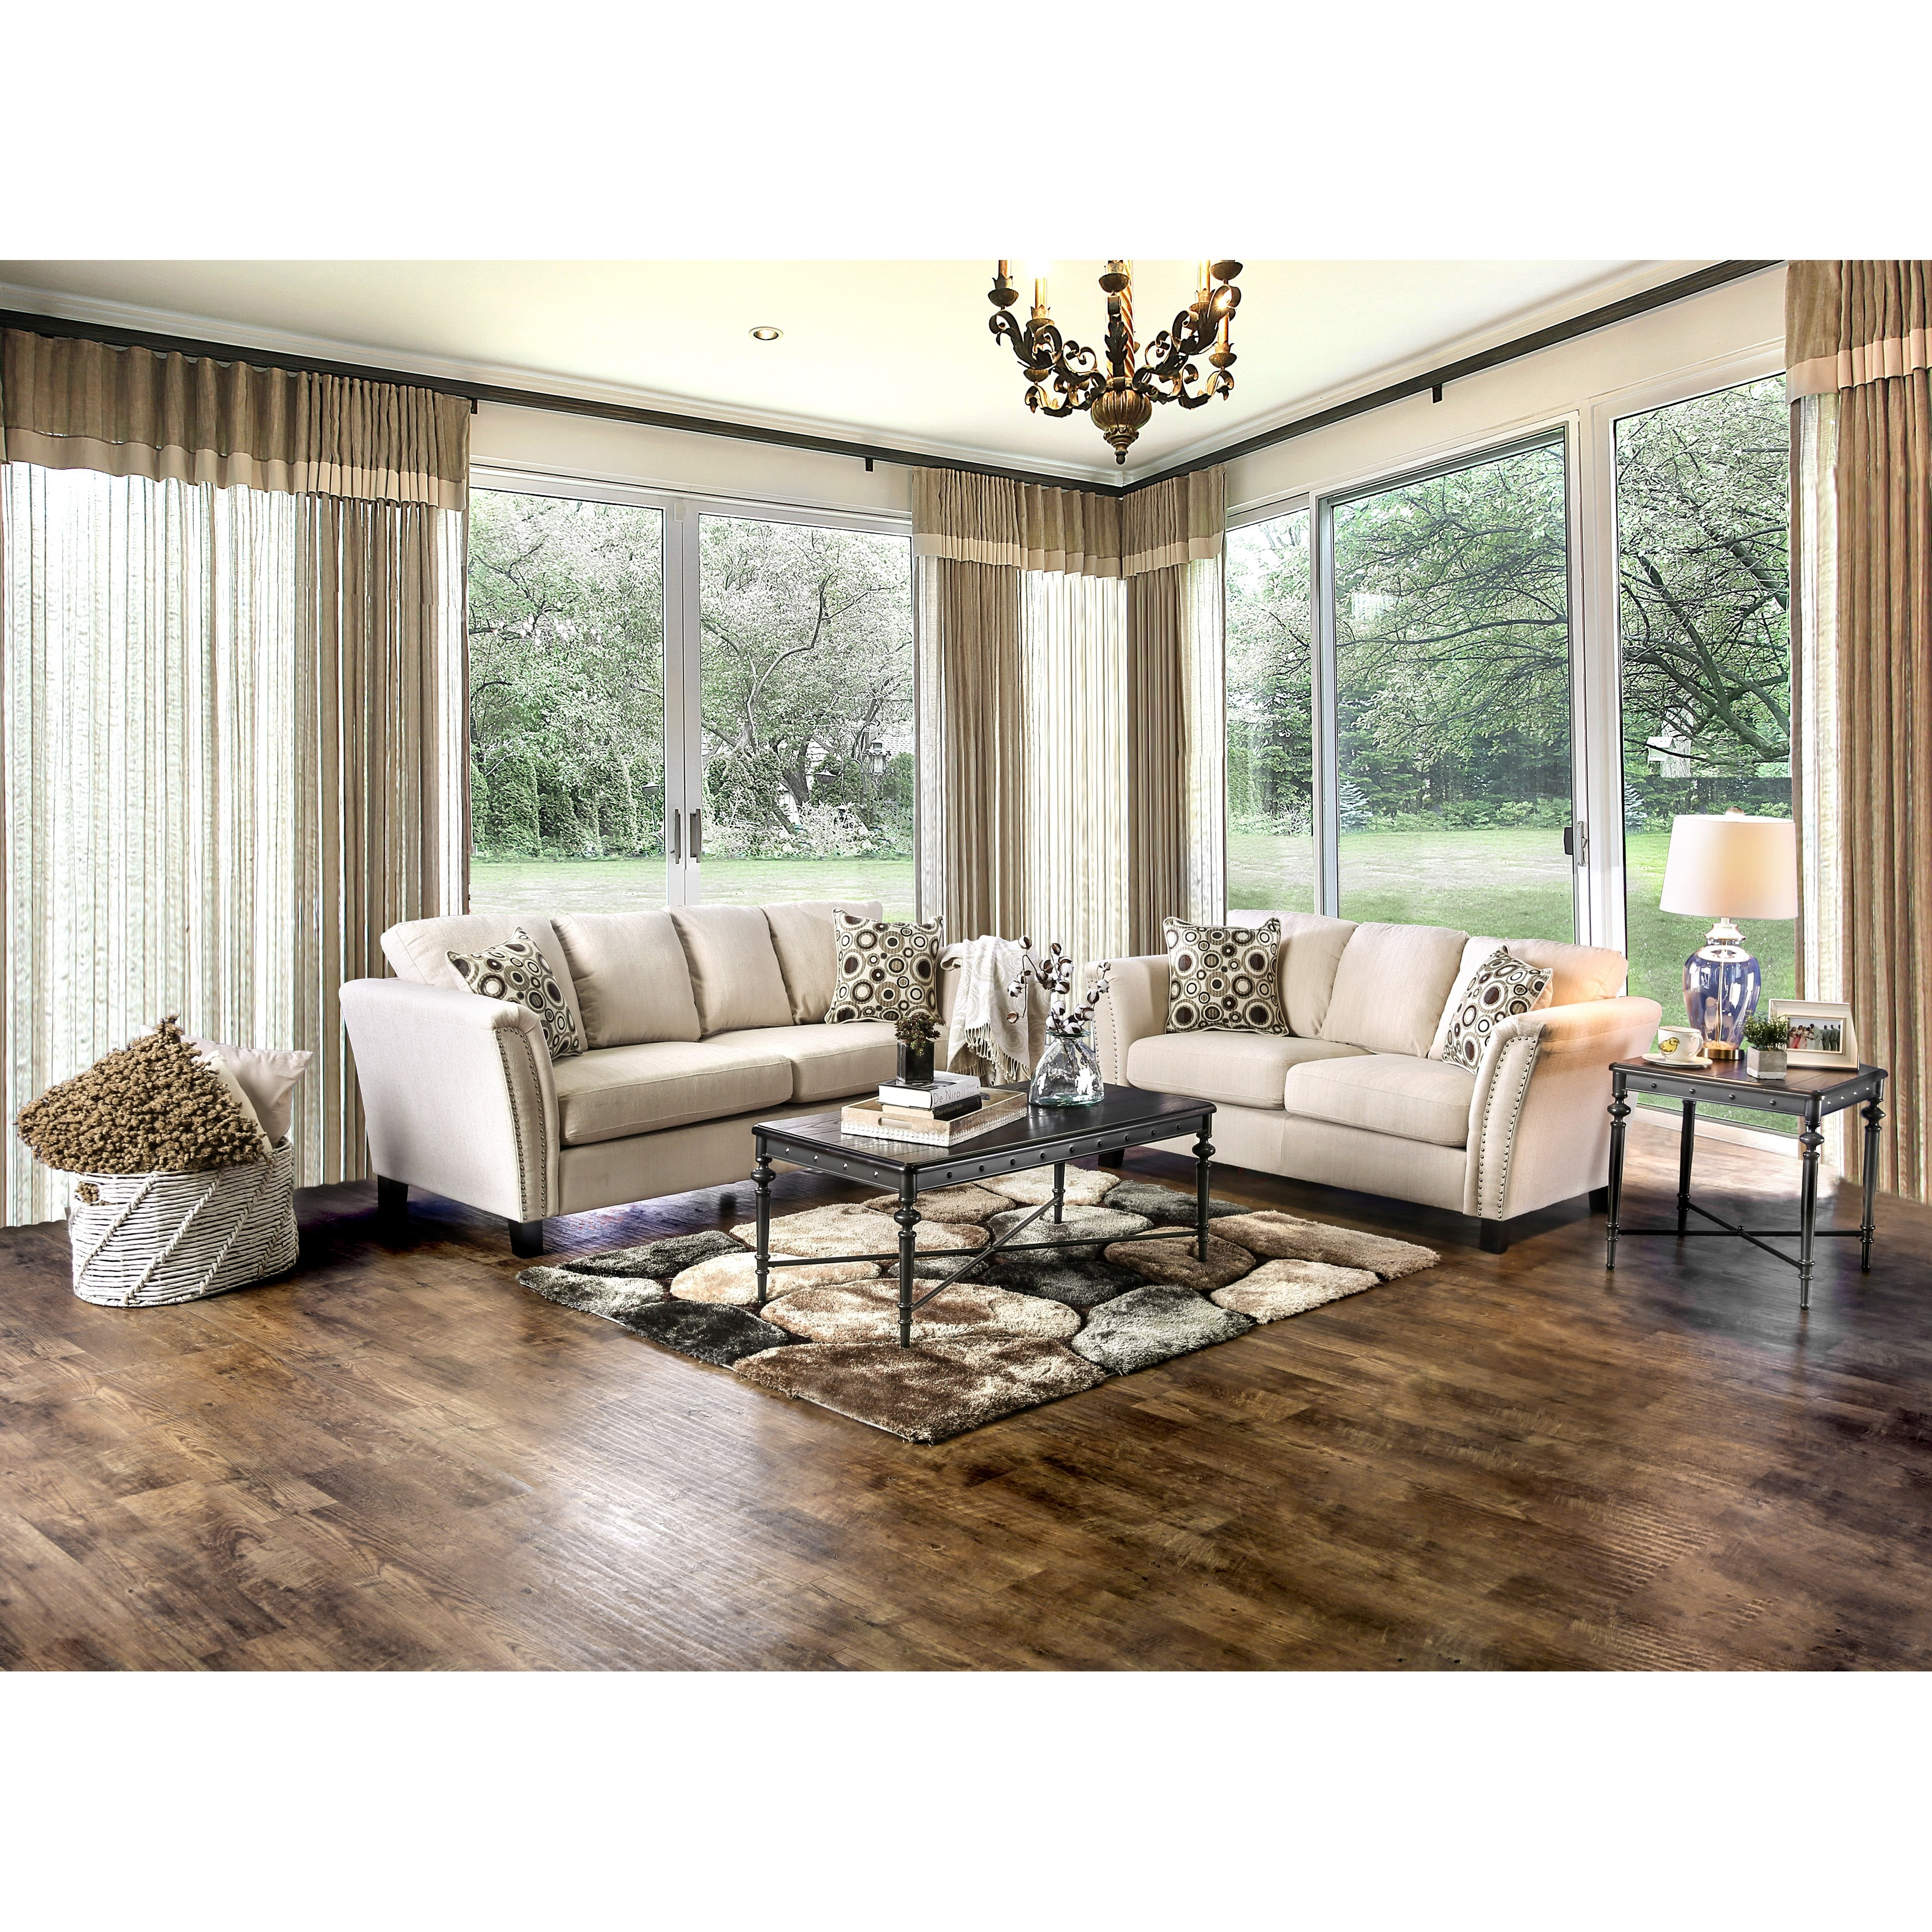 Nice Furniture Of America Vellaire Contemporary 2 Piece Sofa Set   Free Shipping  Today   Overstock.com   17620147